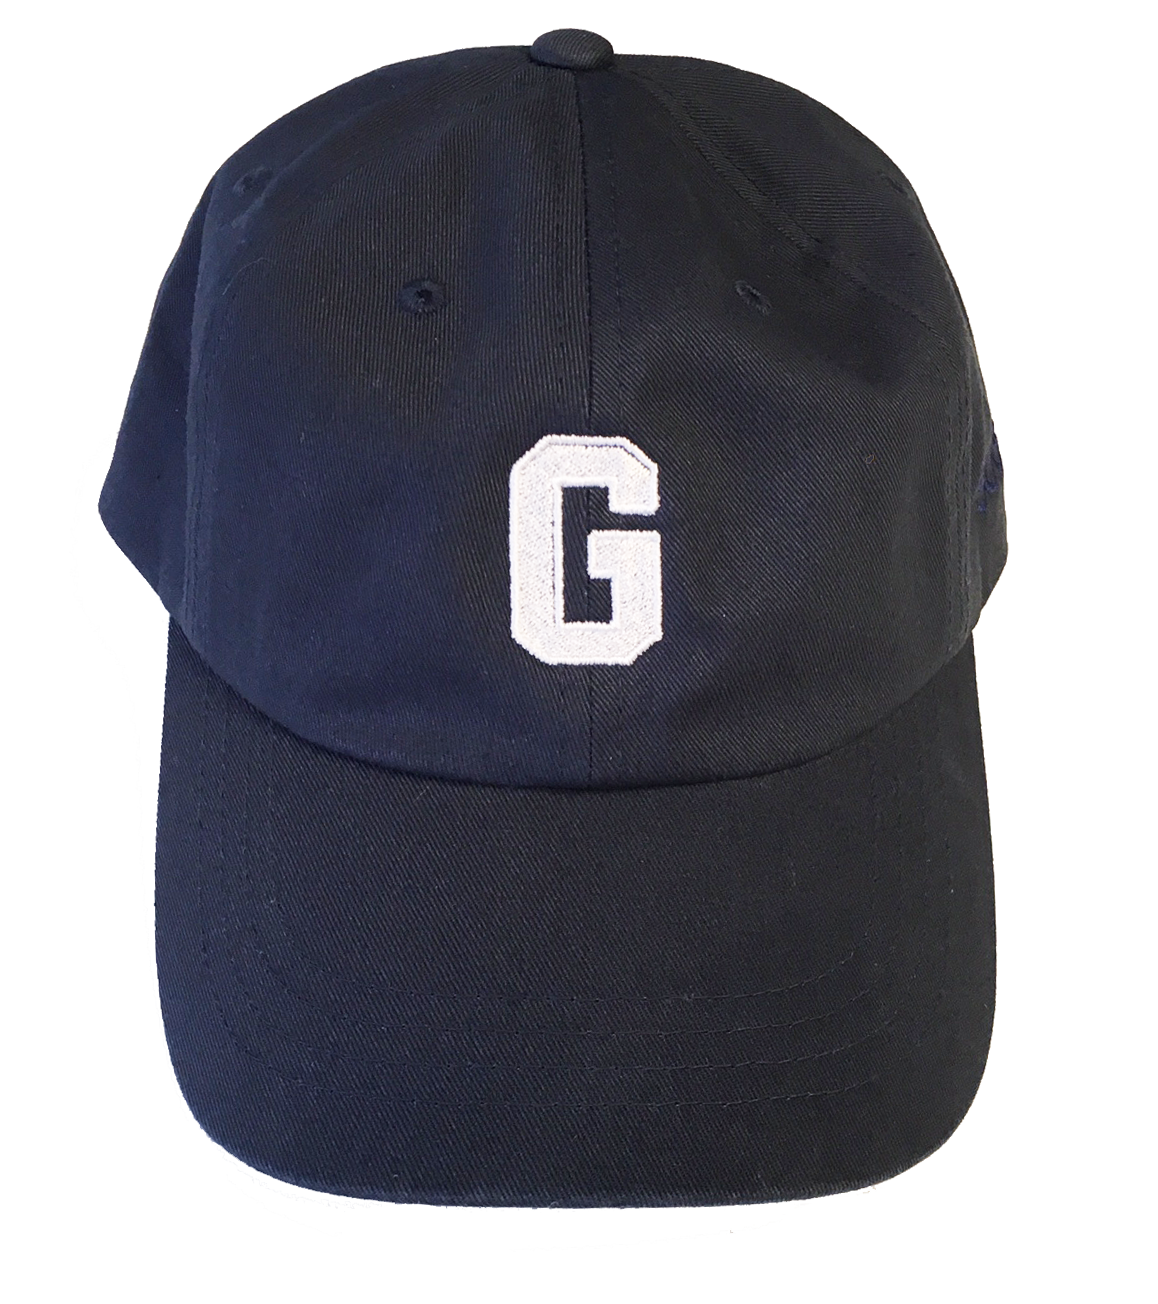 0d373aff505 homestead_grays_hat_front_1024x1024@2x.png